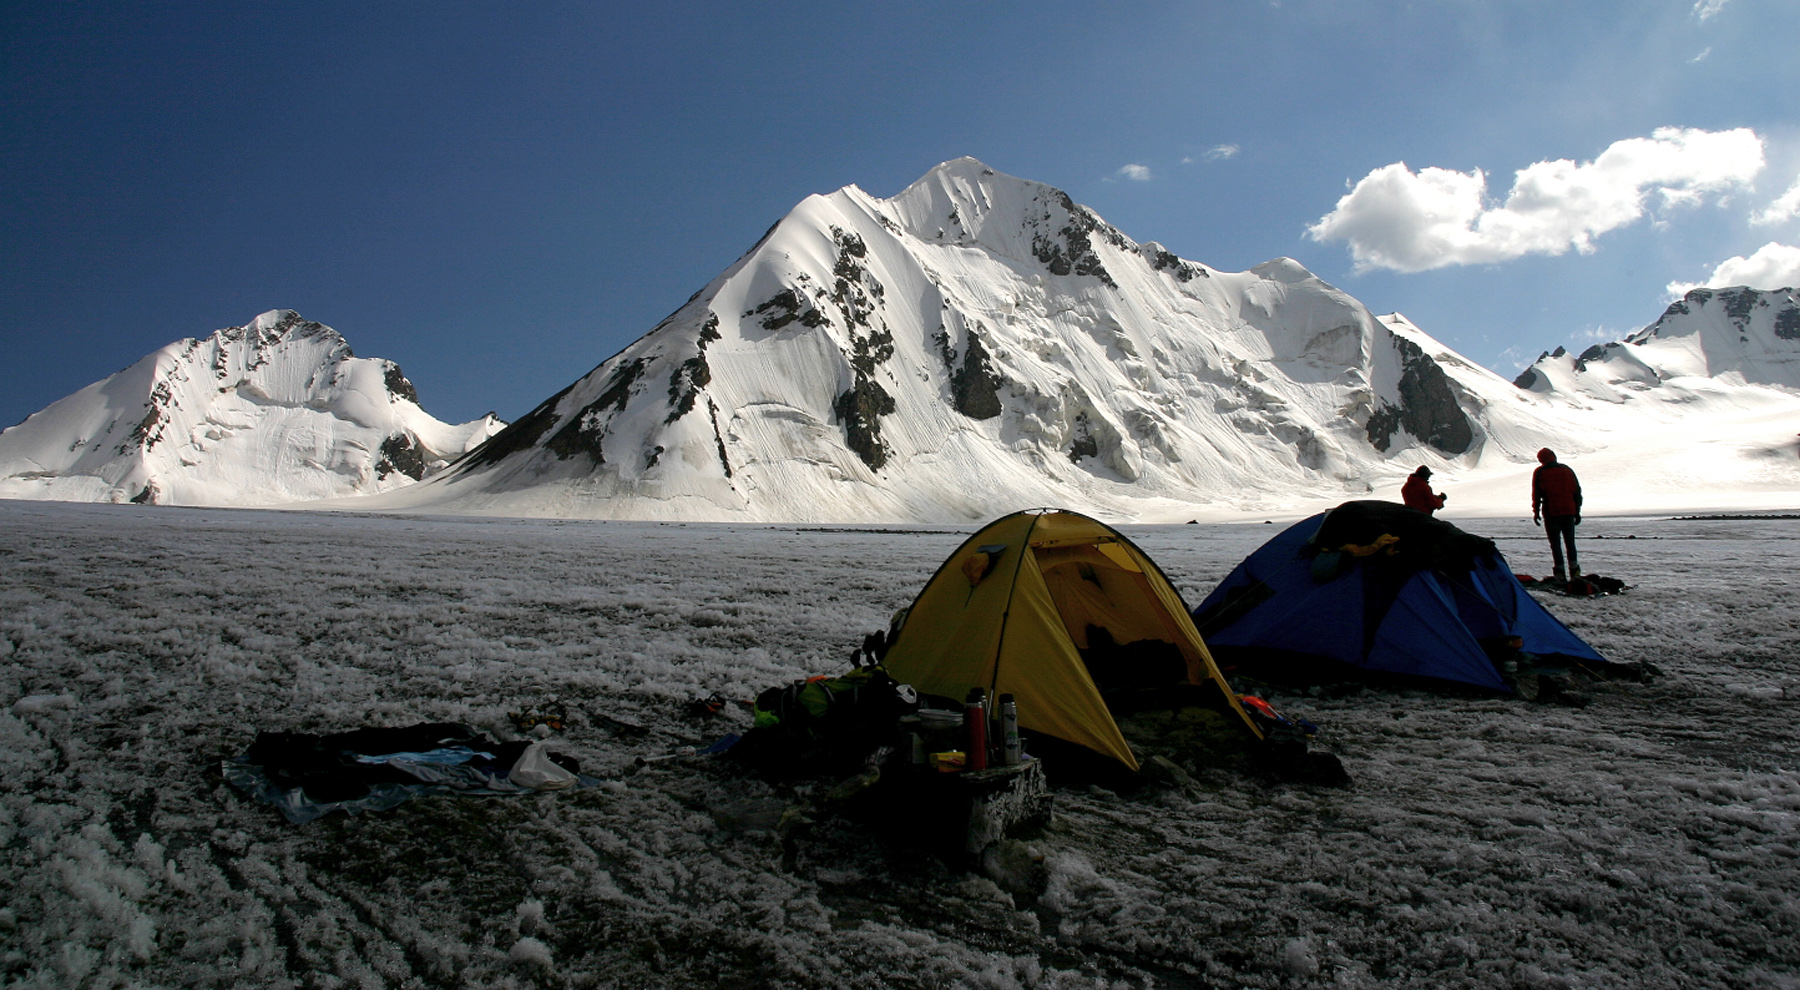 The north side of Night Butterfly (right) and Pik Uigur from advanced base on the Dzhirnagaktu Glacier.